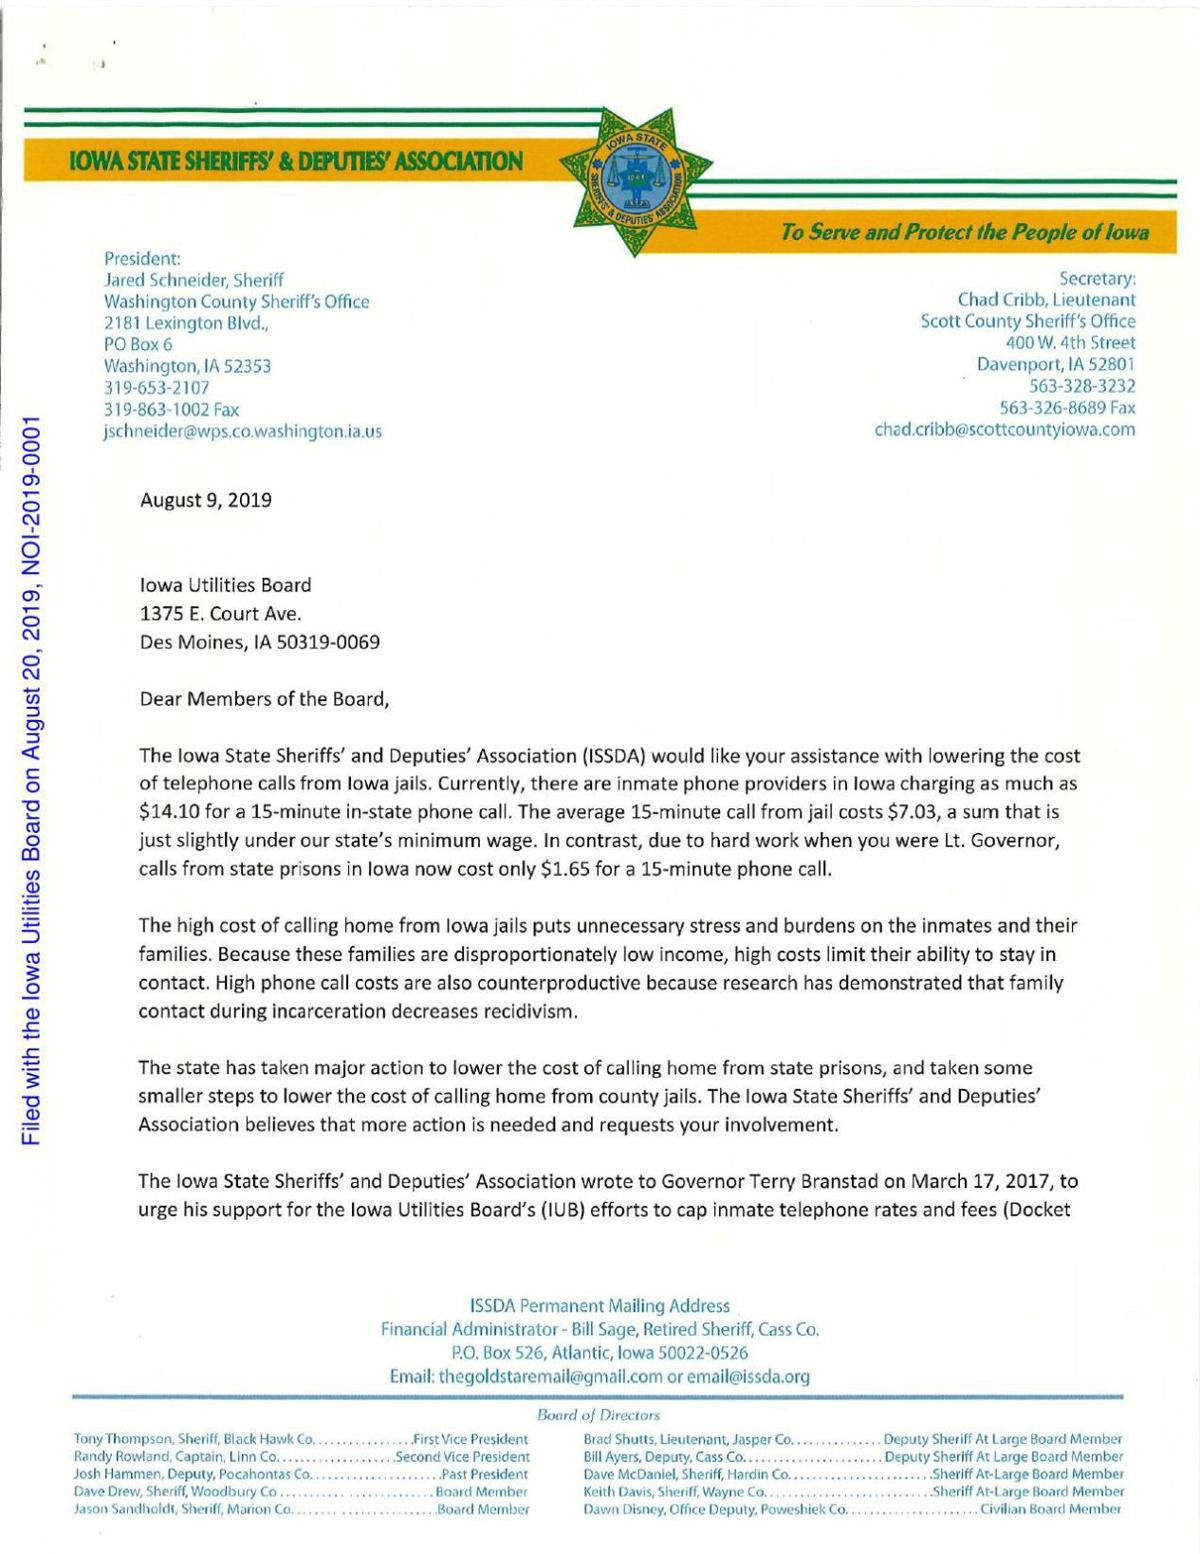 Iowa State Sheriffs' letter to the Iowa Utilities Board